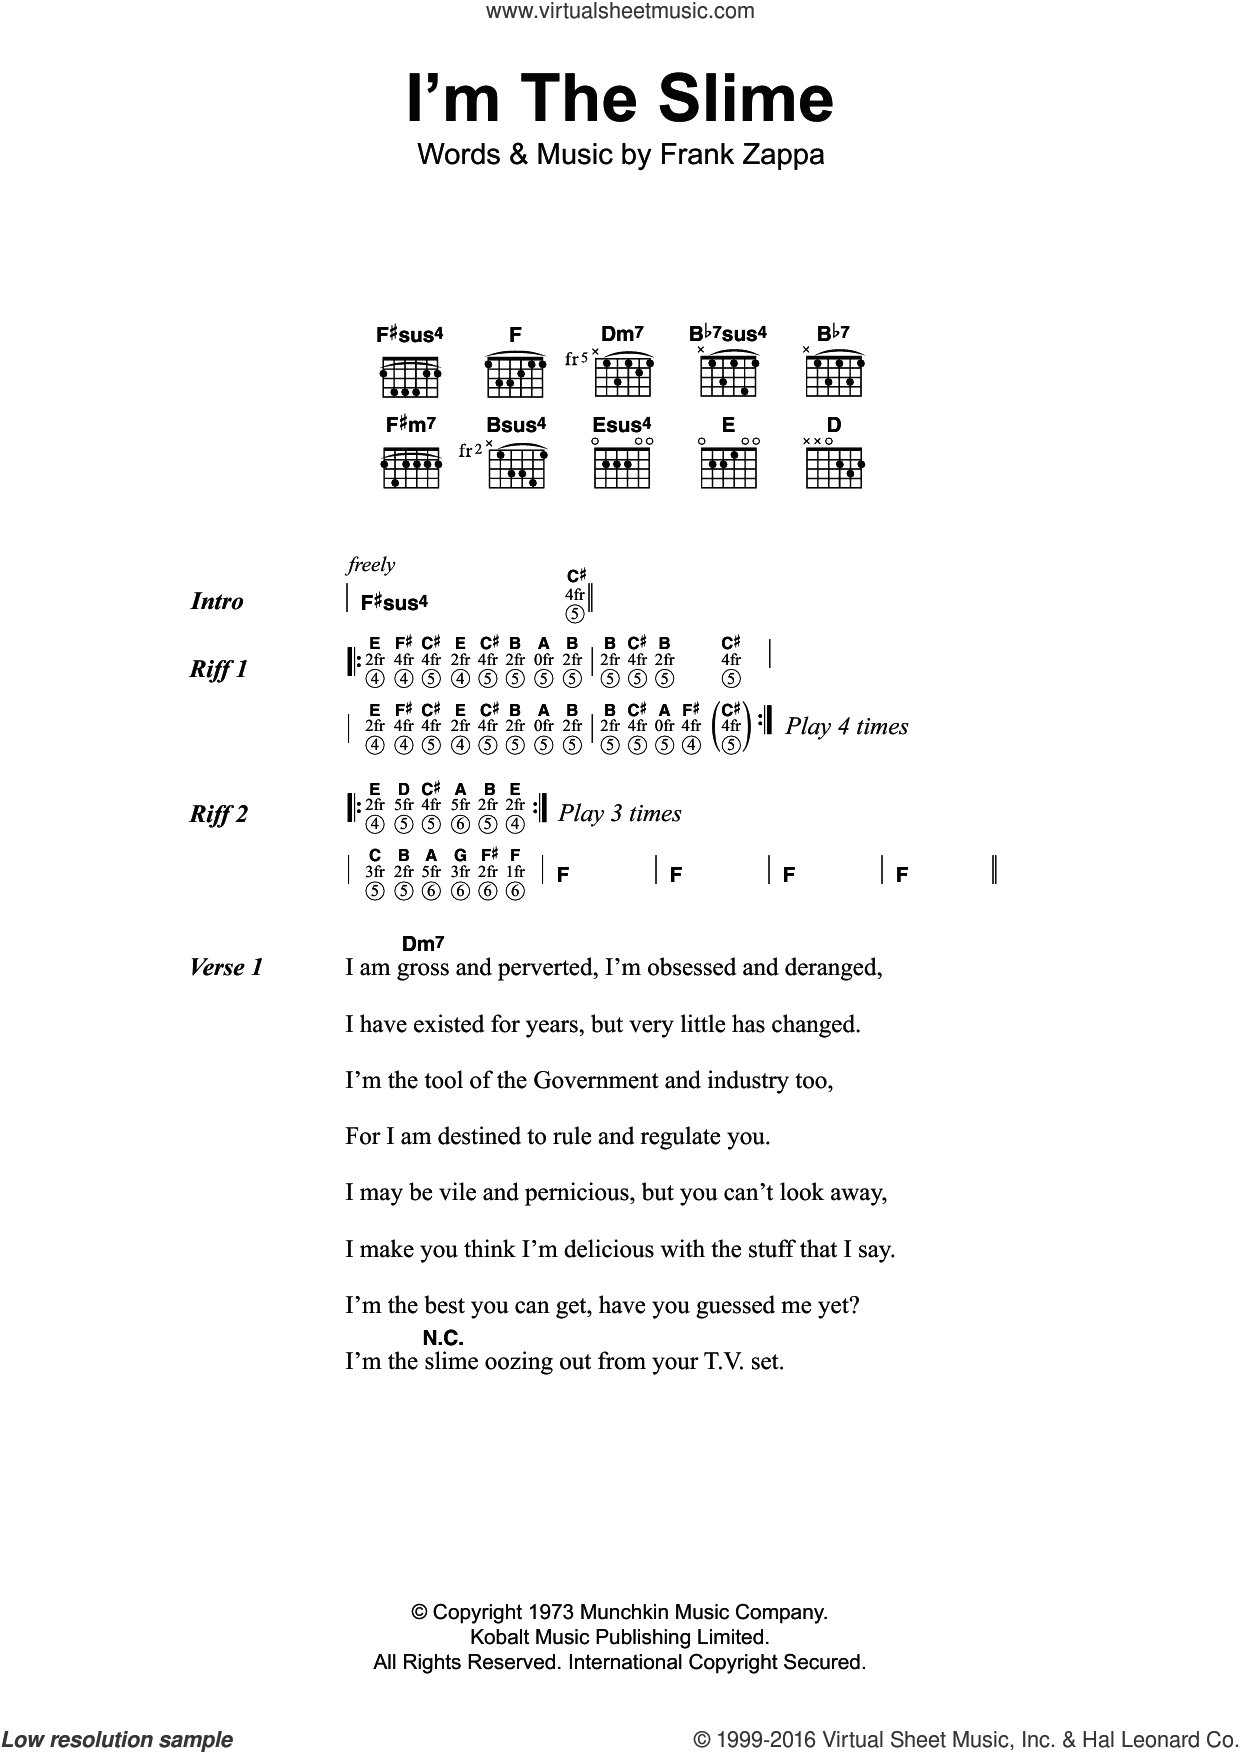 I'm The Slime sheet music for guitar (chords) by Frank Zappa, intermediate skill level